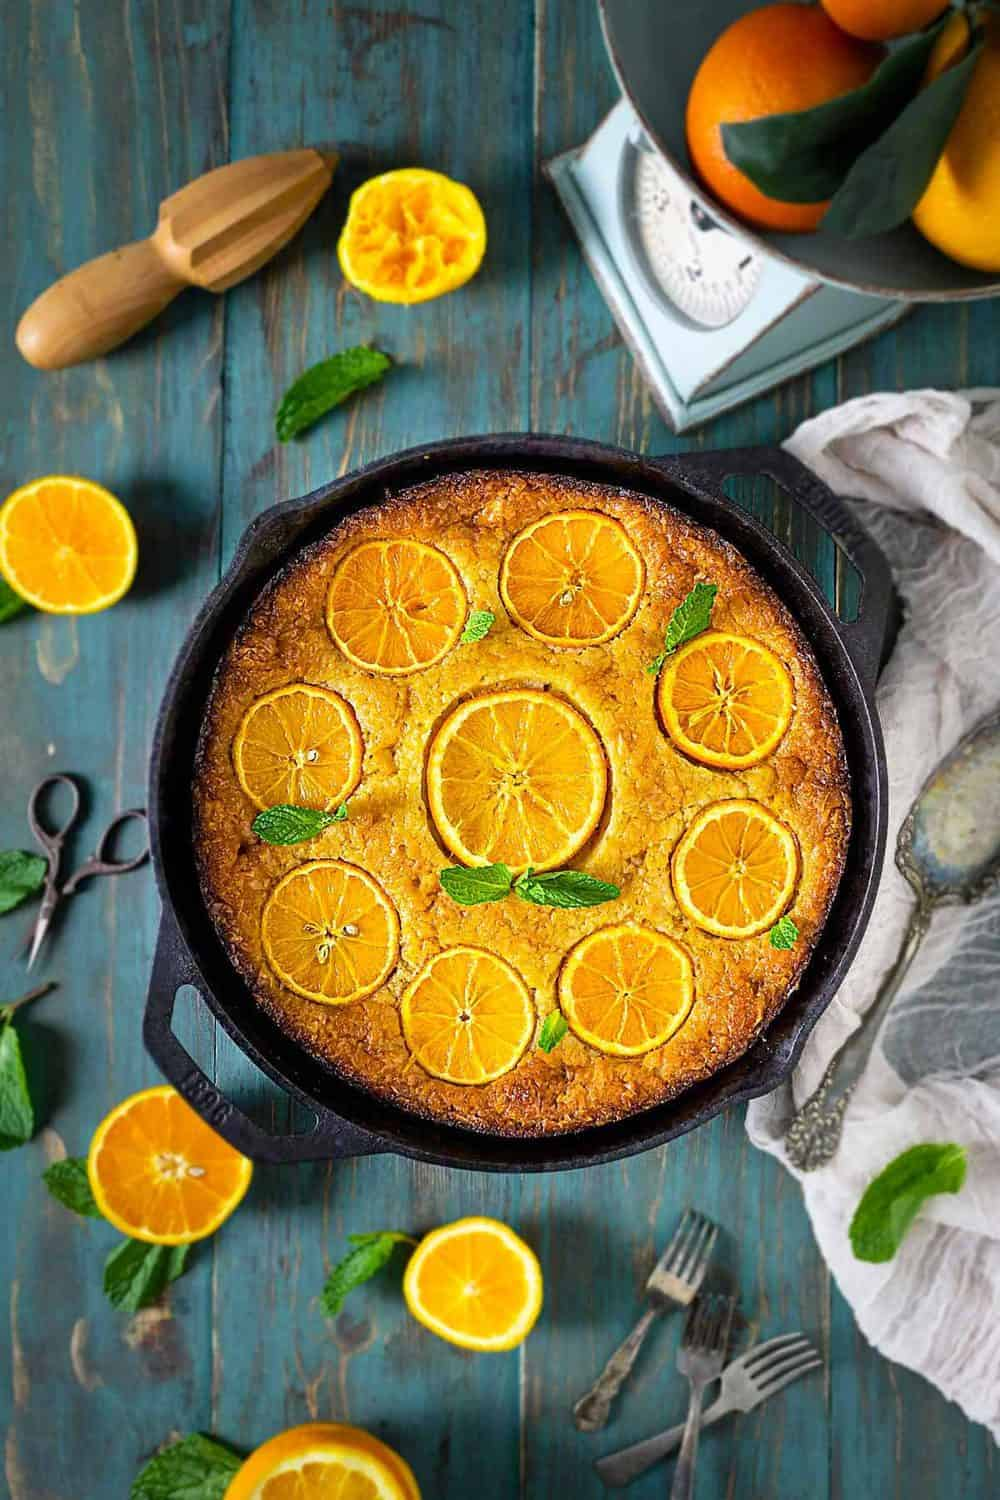 Overhead photo of a skillet with fillo and orange cake on a table with orange halves.